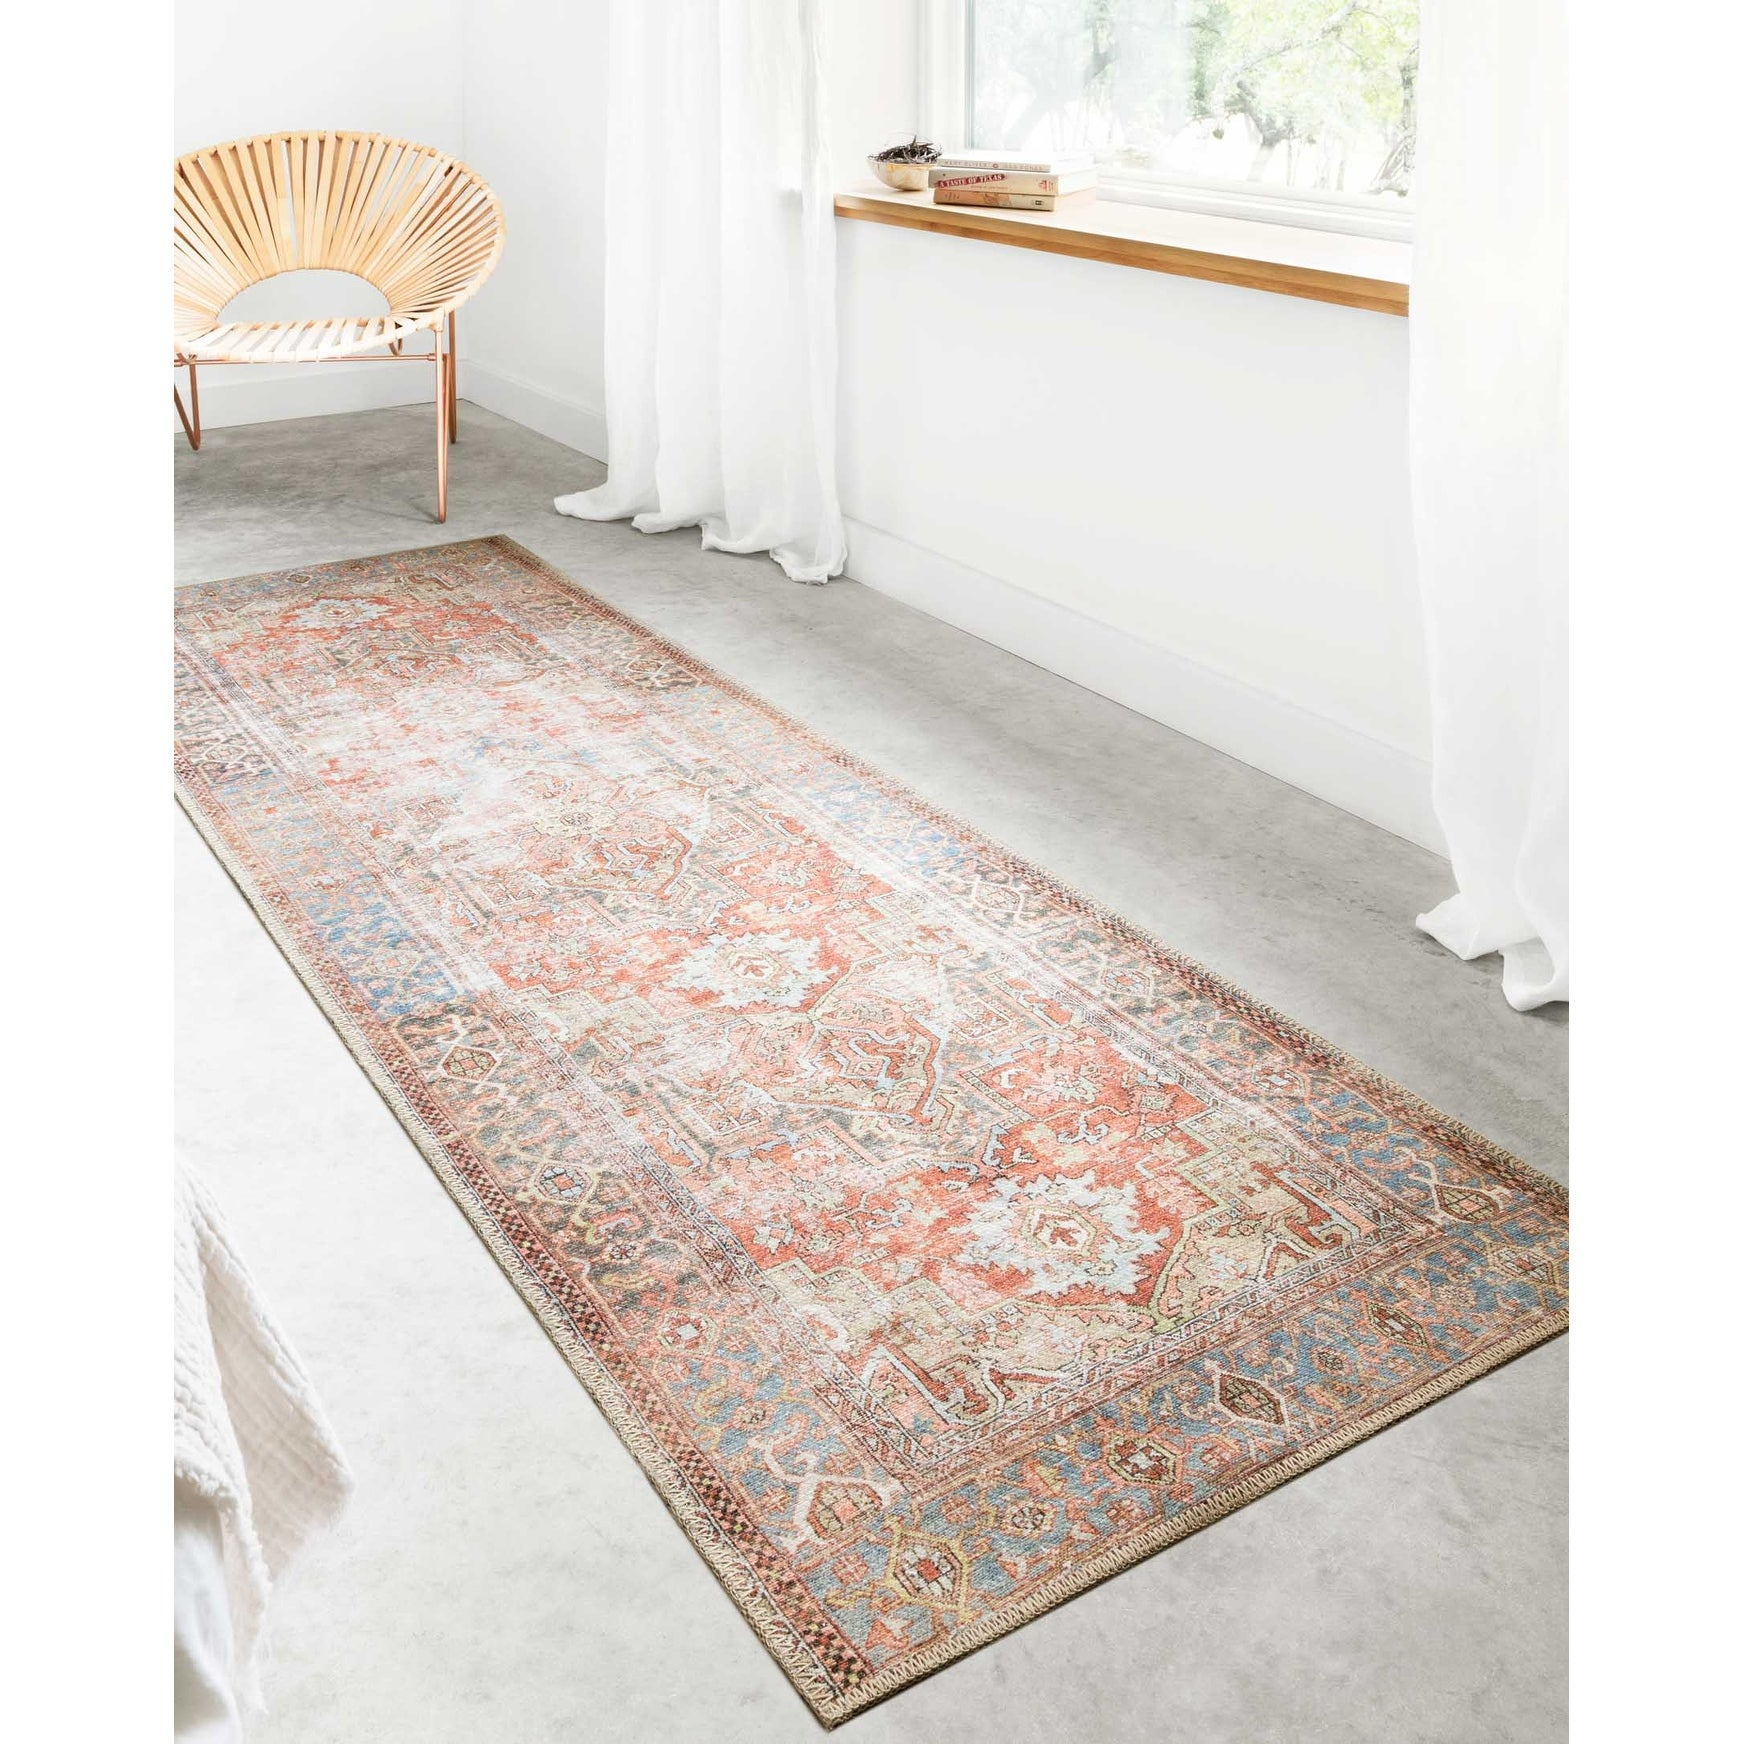 """Shop Alexander Home Tremezzina Printed Bohemian Terracotta Sky Distressed Rug - 2'6"""" x 7'6"""" Runner from Overstock on Openhaus"""